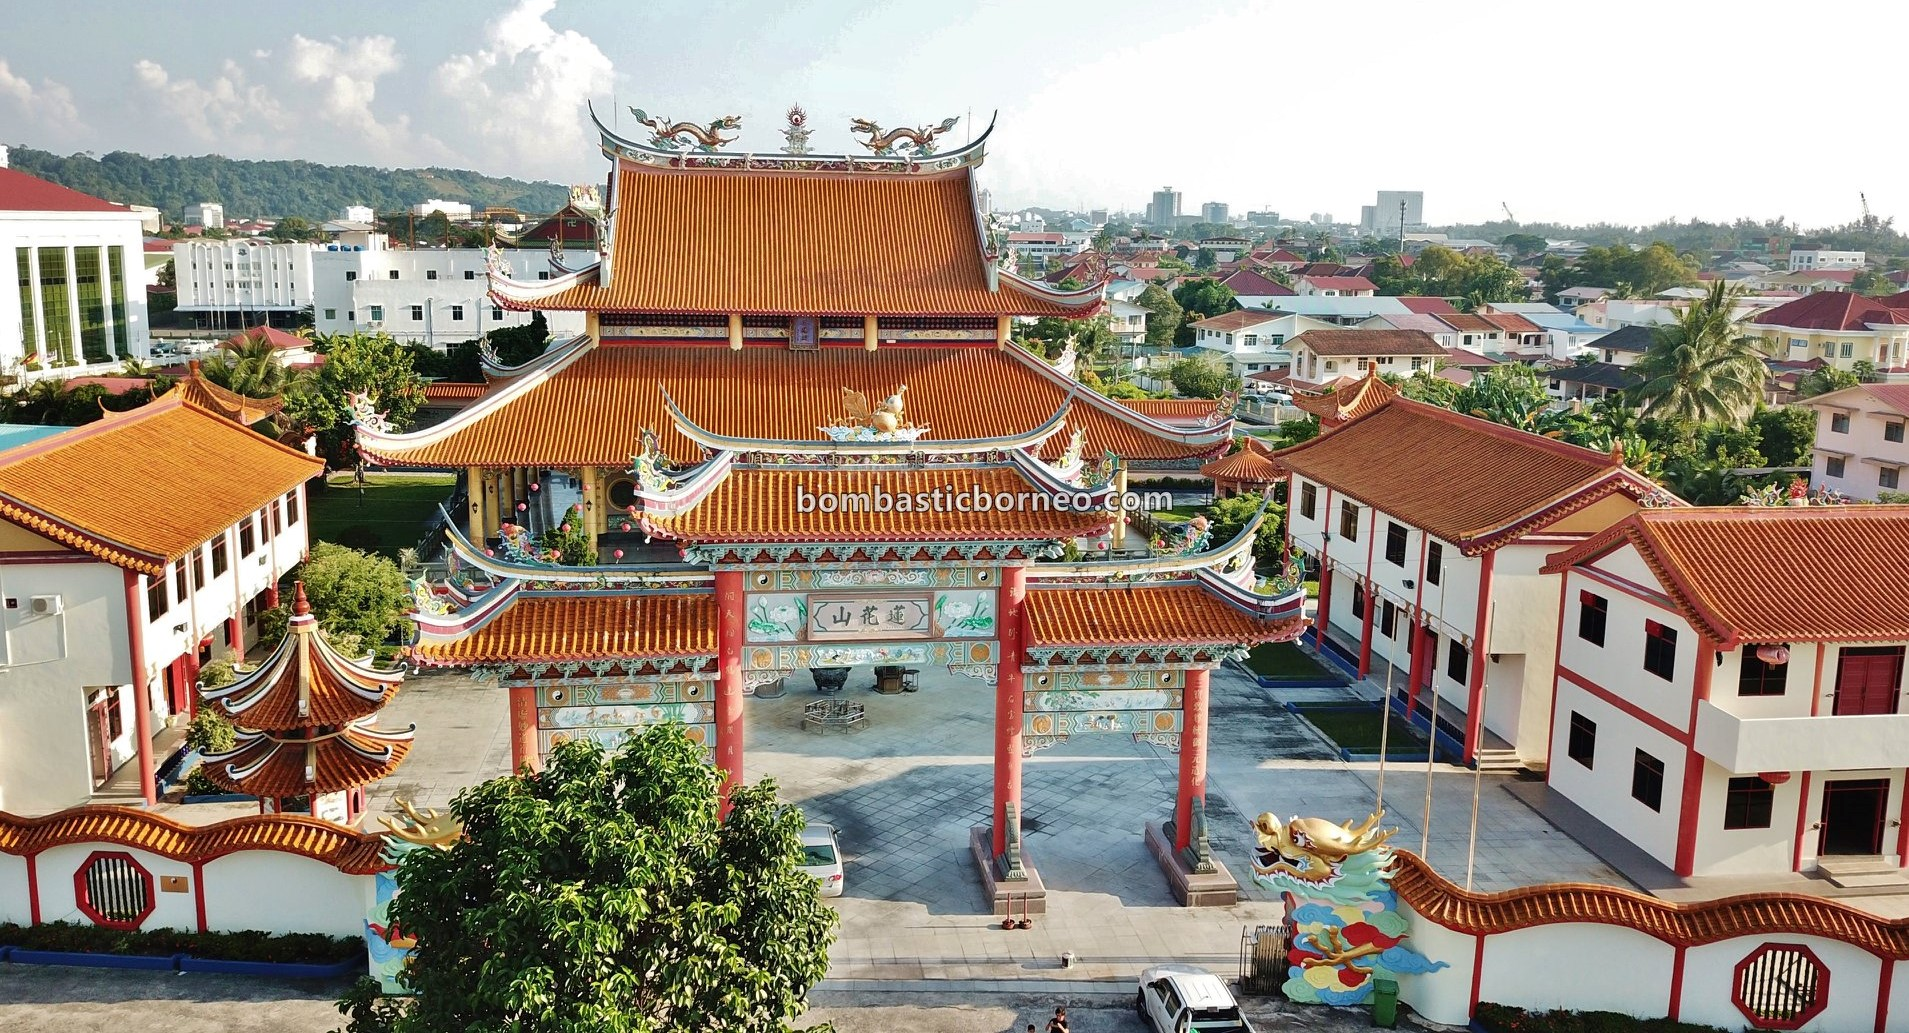 backpackers, destination, Taoist Temple, chinese temple, Discover Miri City, exploration, Sarawak, Malaysia, Tourism, tourist attraction, travel guide, Borneo, 婆罗洲马来西亚, 砂拉越美里旅游景点, 莲花山三清殿,